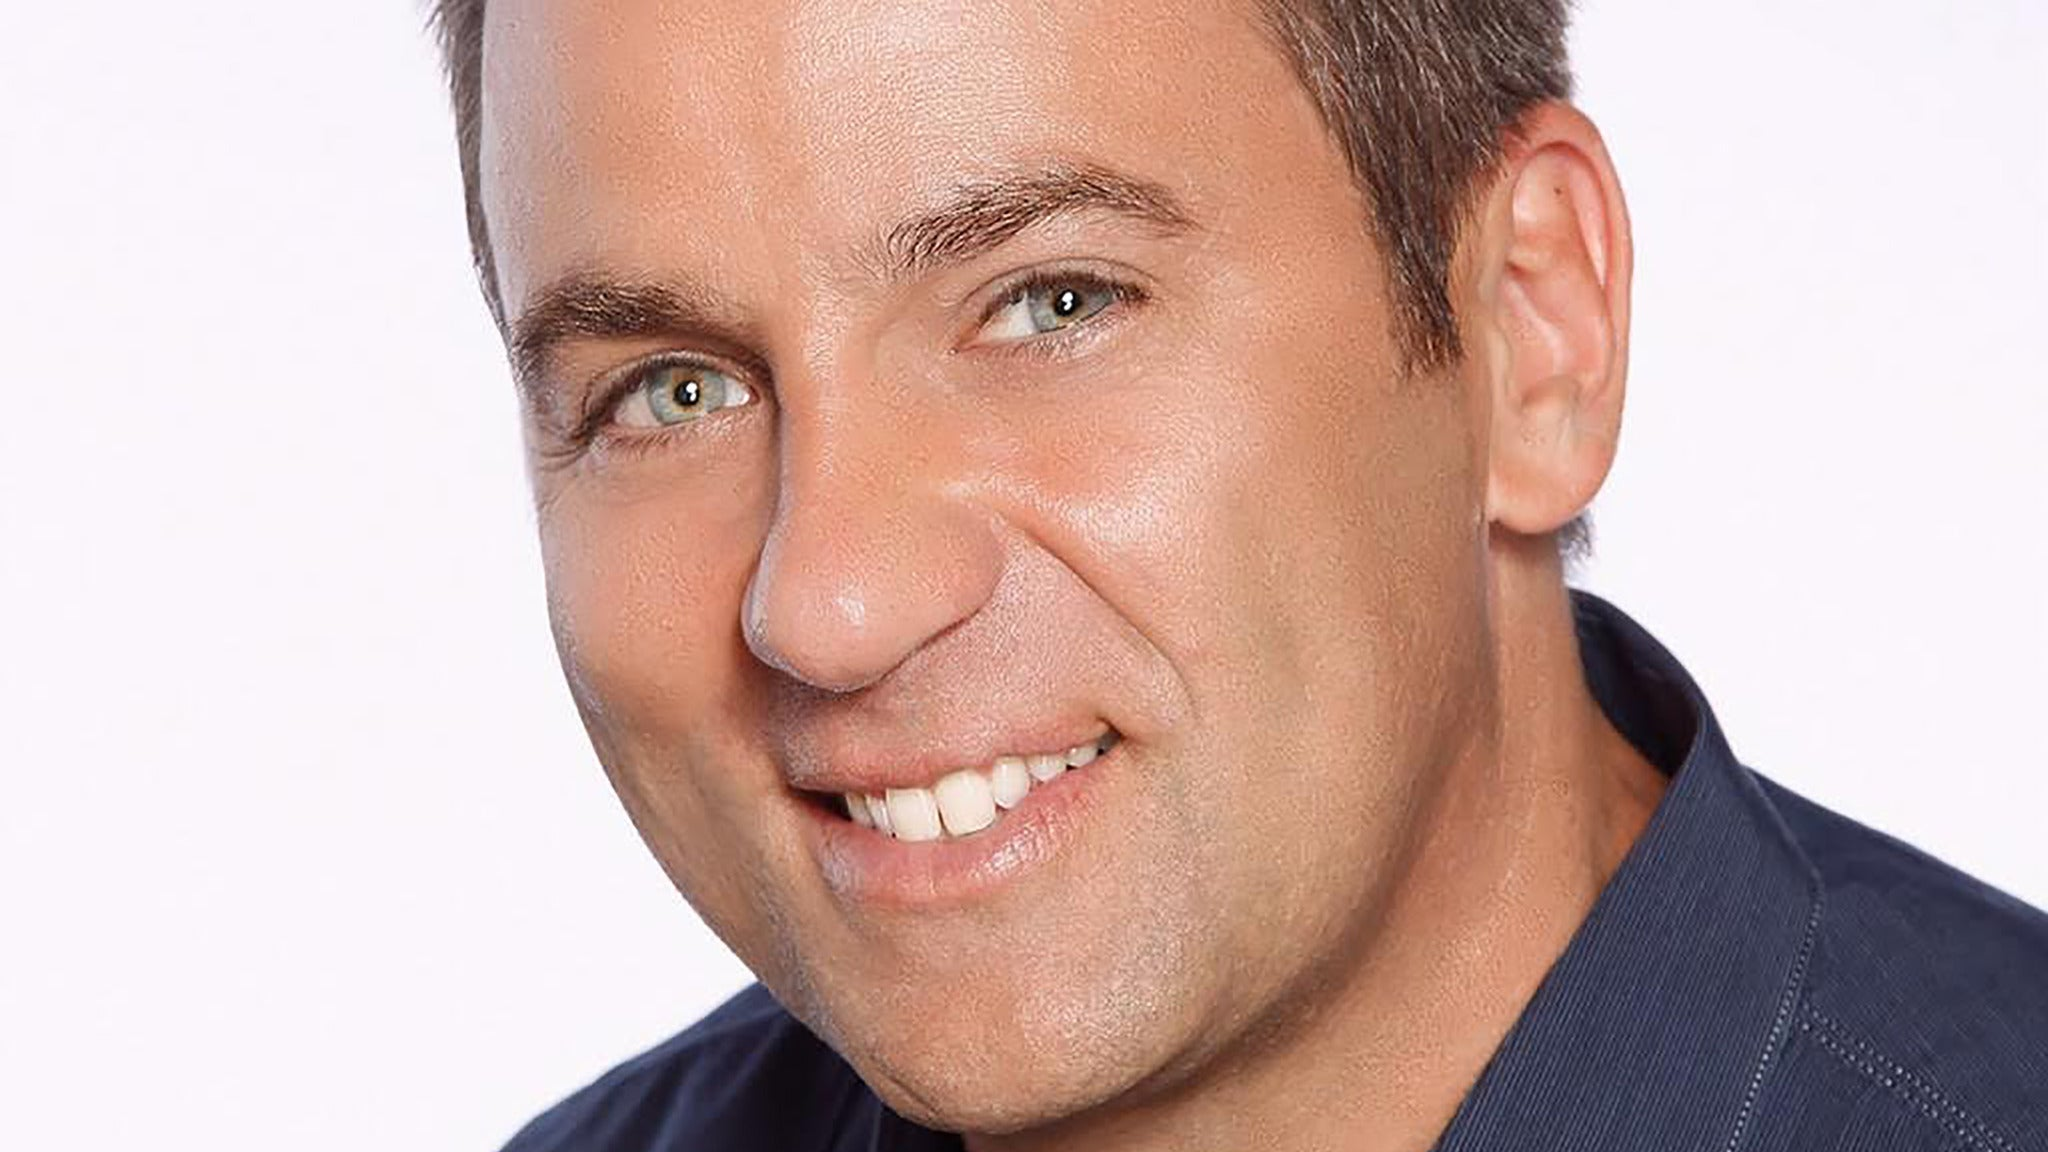 John Heffron at Punch Line Comedy Club - San Francisco